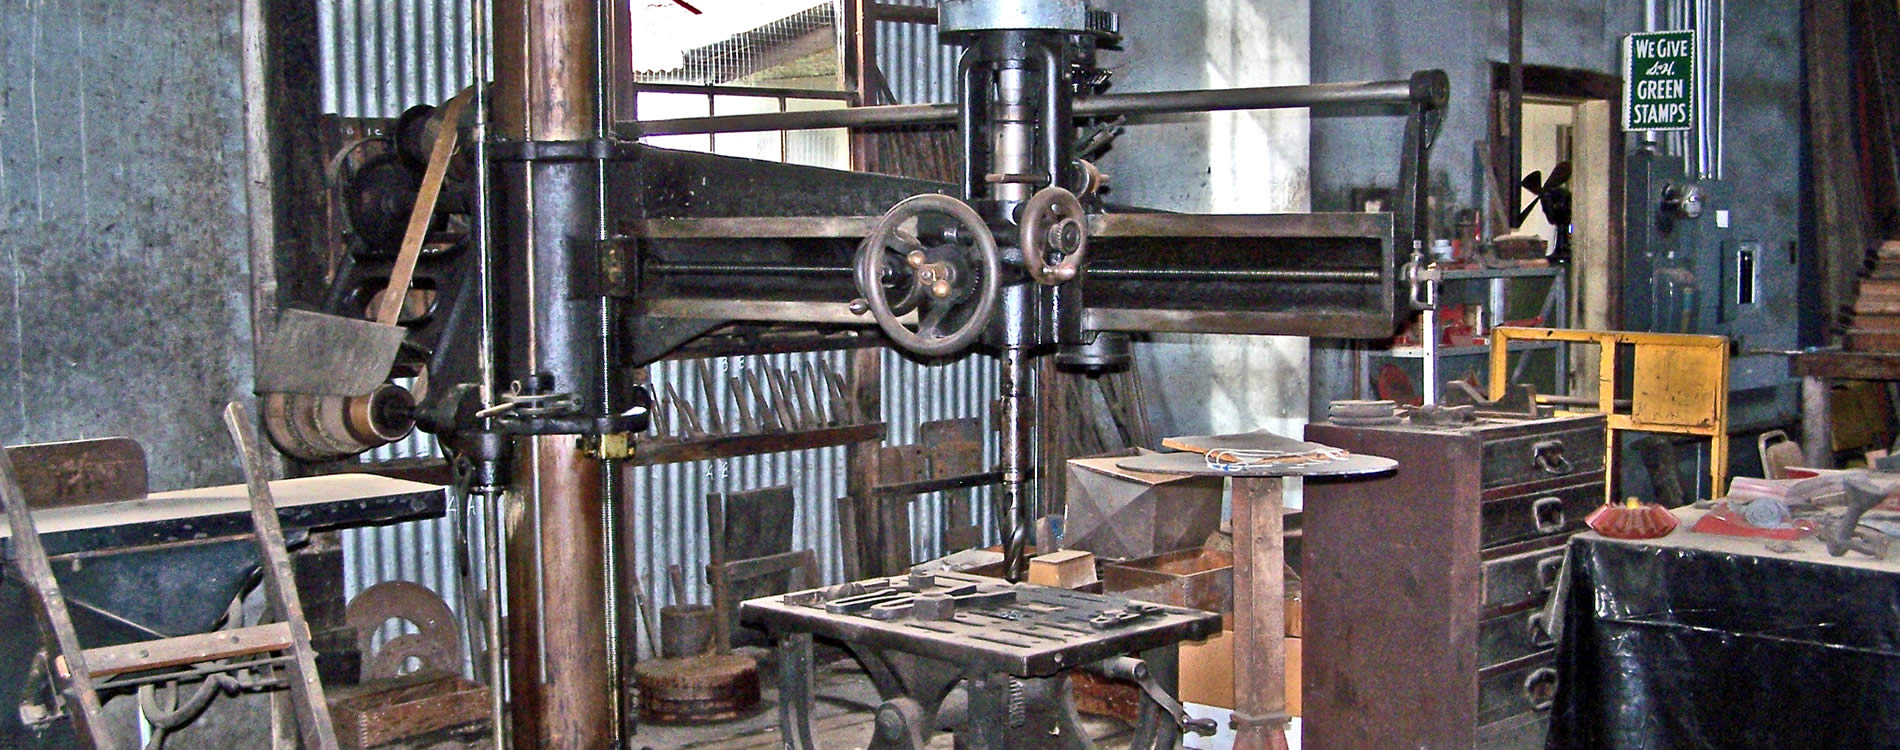 sutter creek knight foundry machine shop historic site from gold rush era